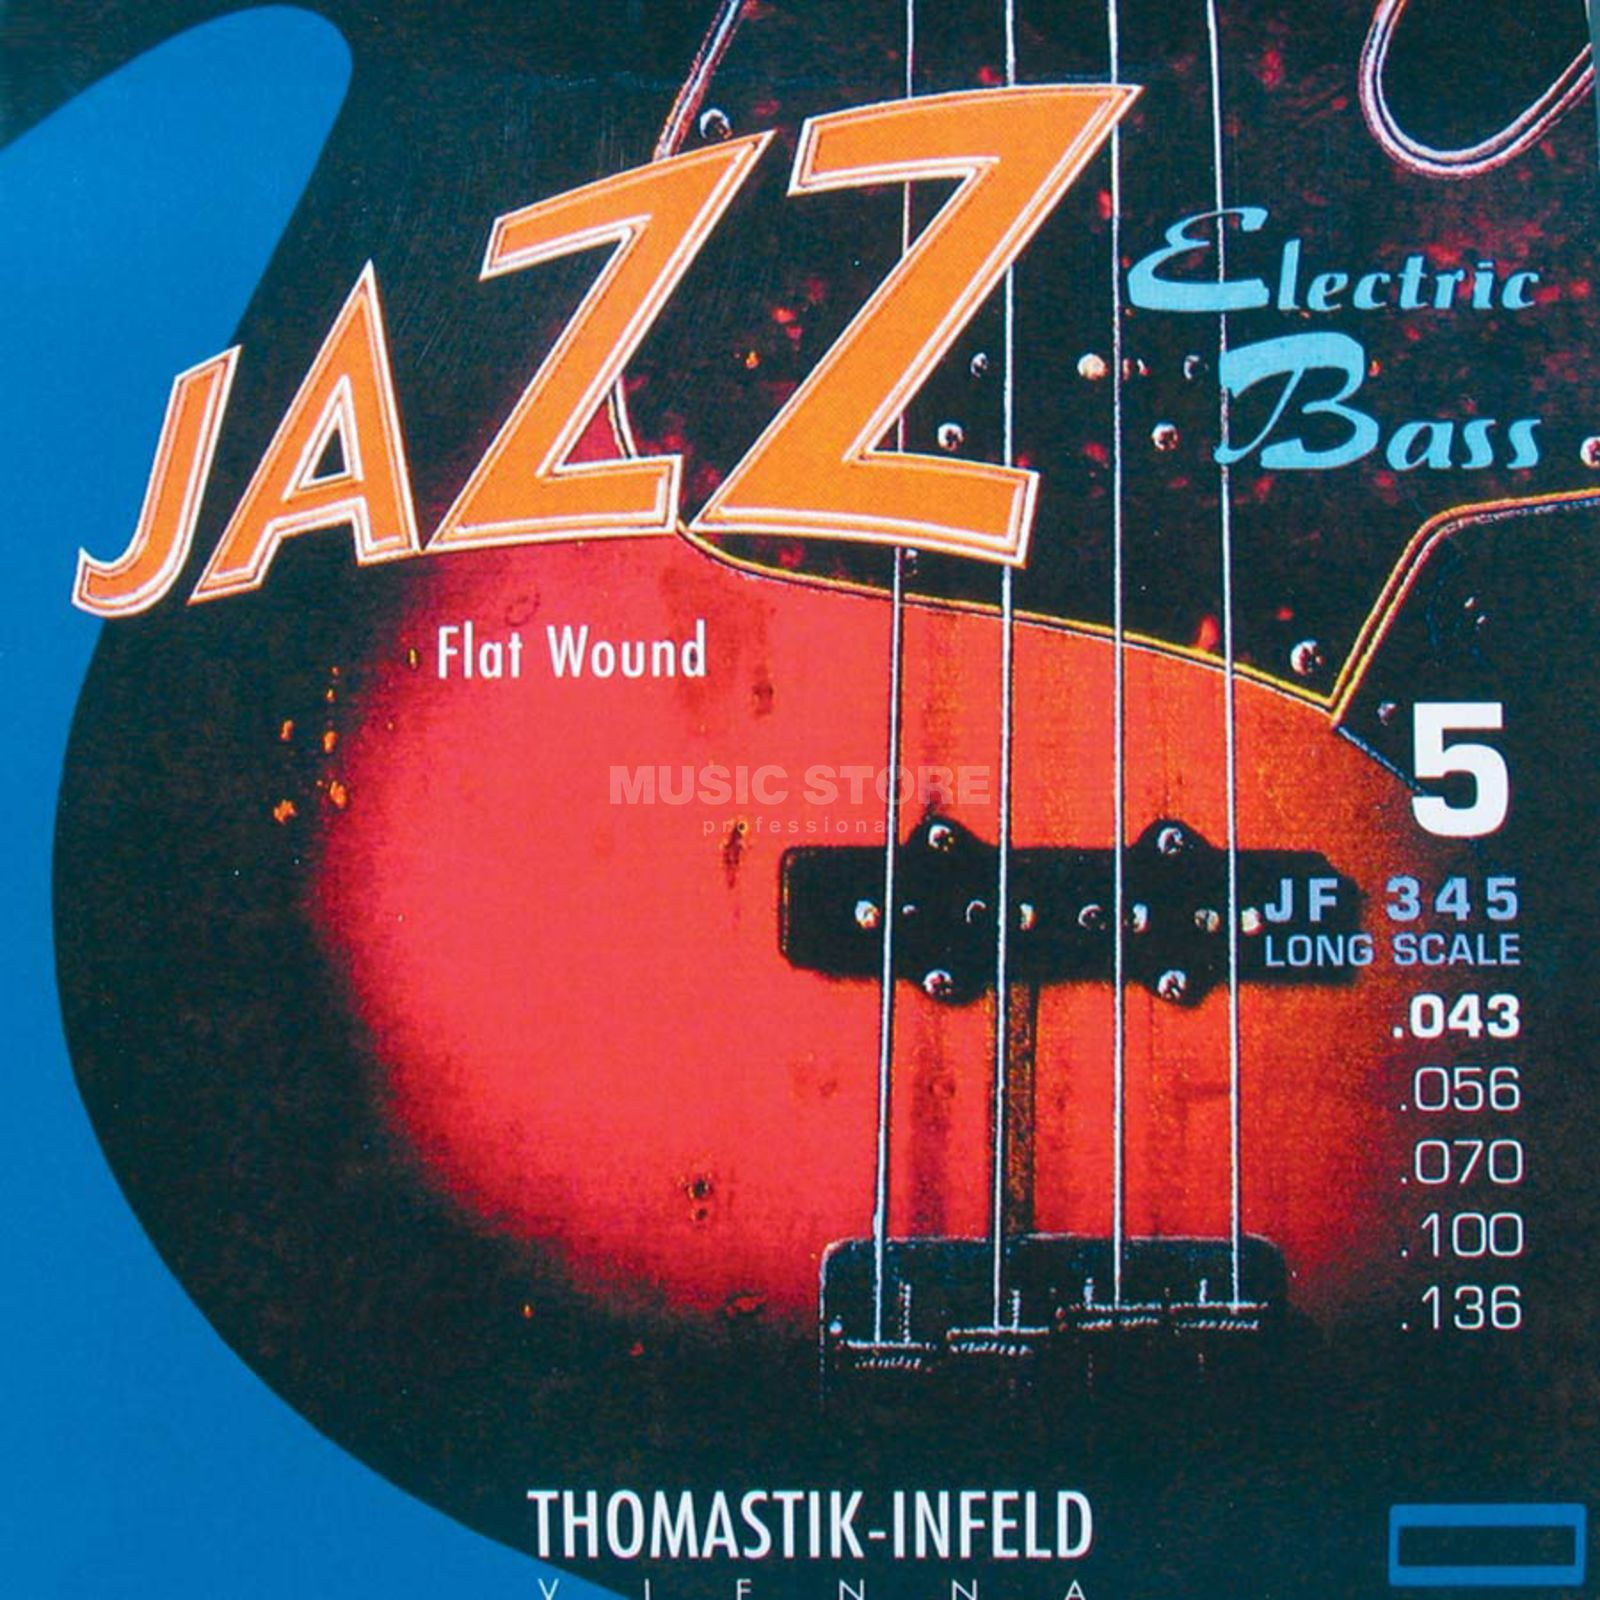 Thomastik 5 Bass Strings JF 345 43-136 Nickel Flat Wound Изображение товара